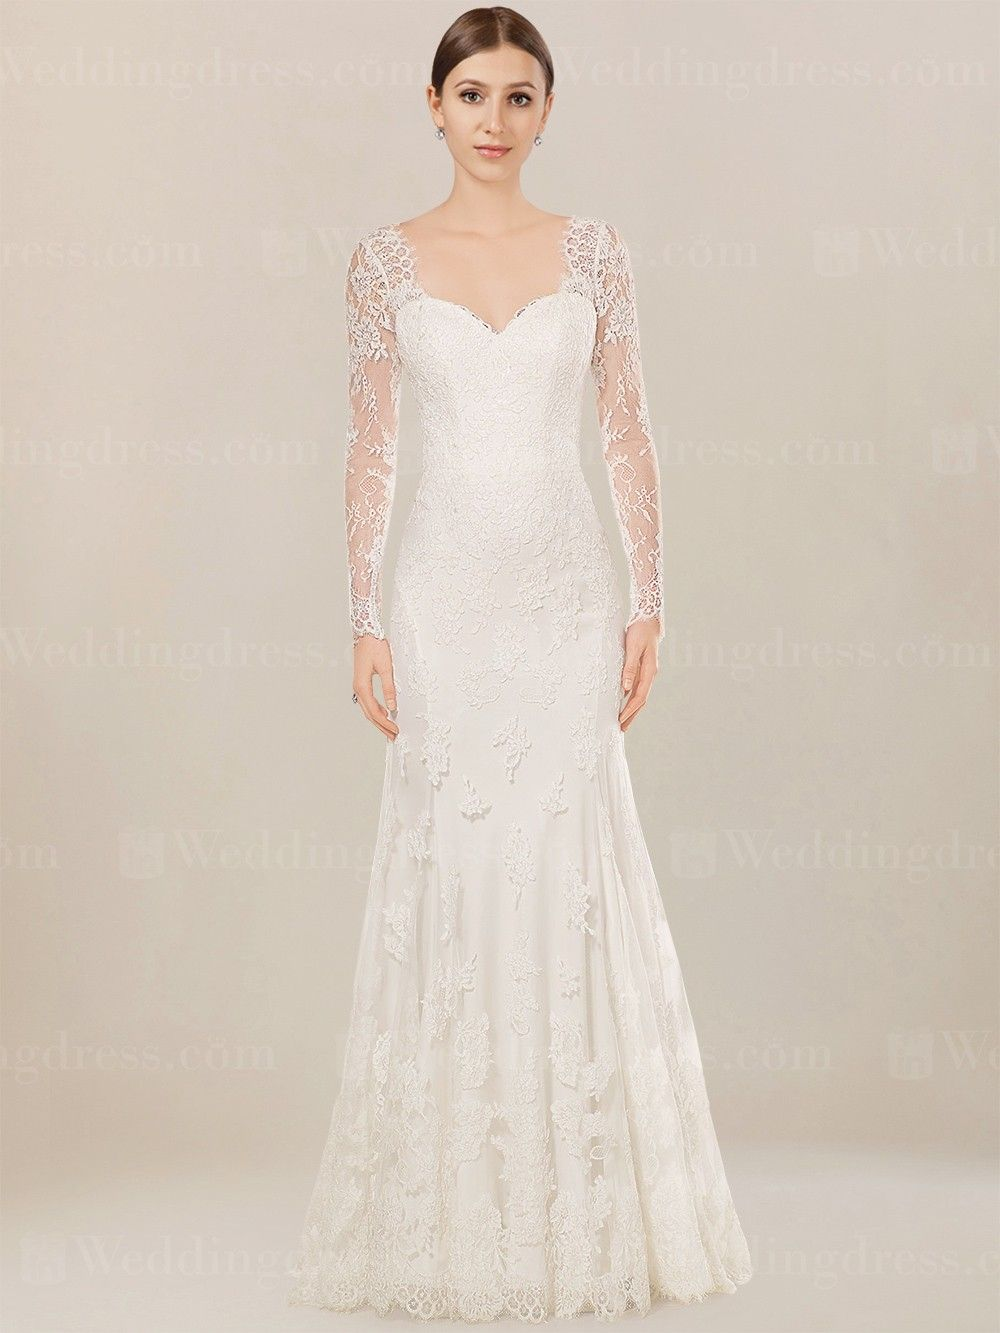 Long sleeves wedding dress is vintage-inspired and features in soft Tulle Lace.